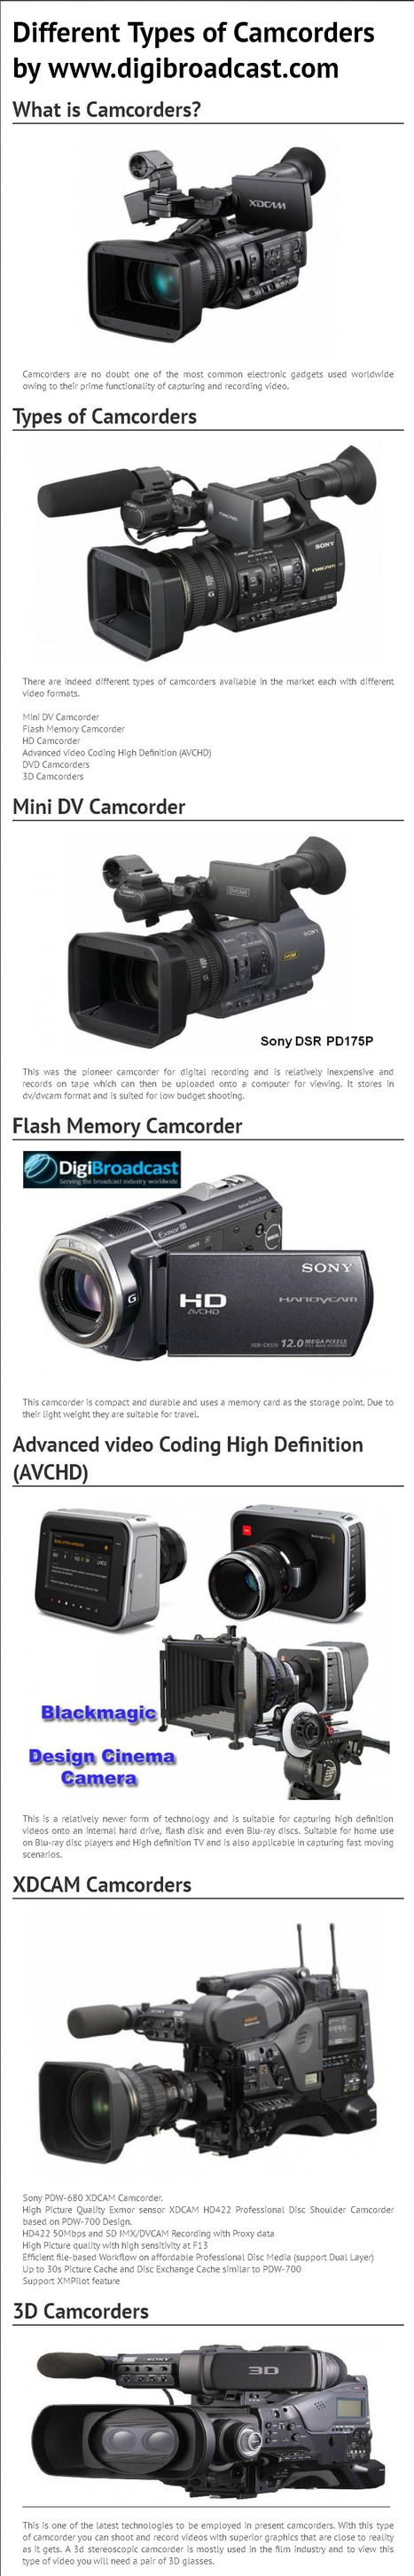 Different Types of Camcorders by www.digibroadcast.com [INFOGRAPH] | digibroadcast | Scoop.it